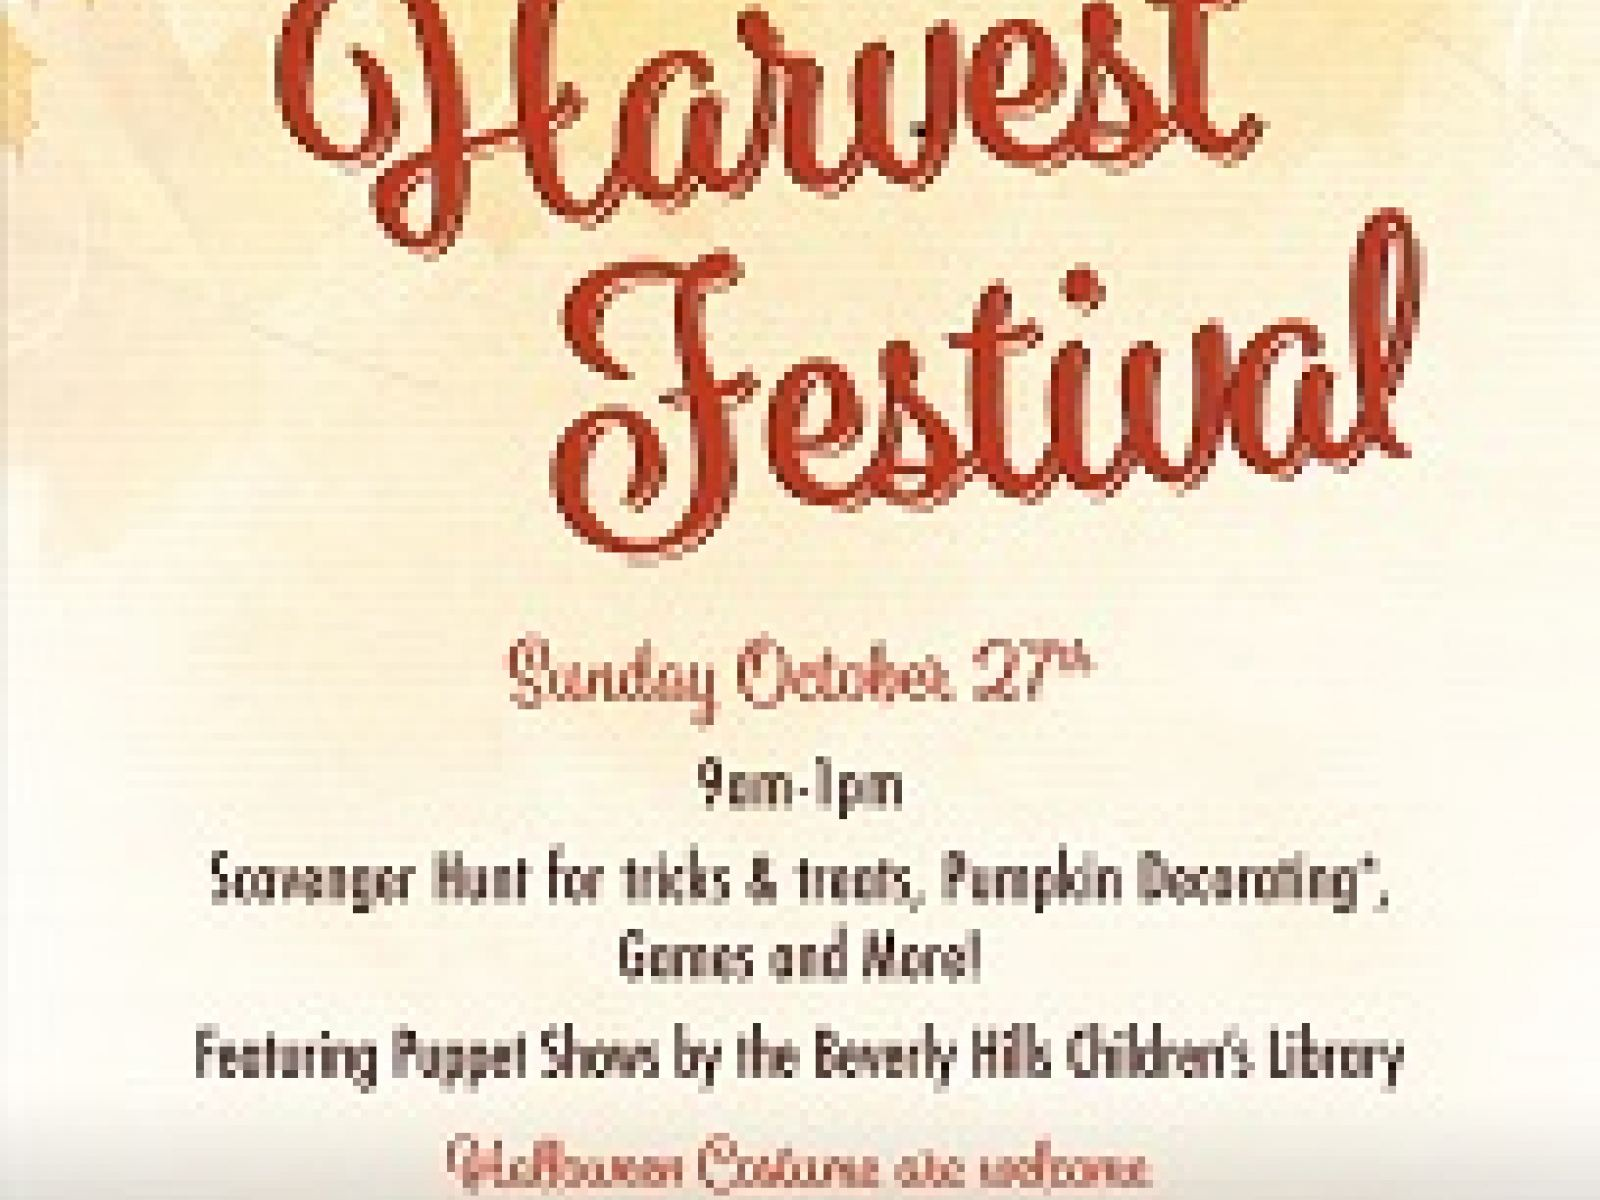 Beverly Hills Farmers Market Fall Harvest Festival